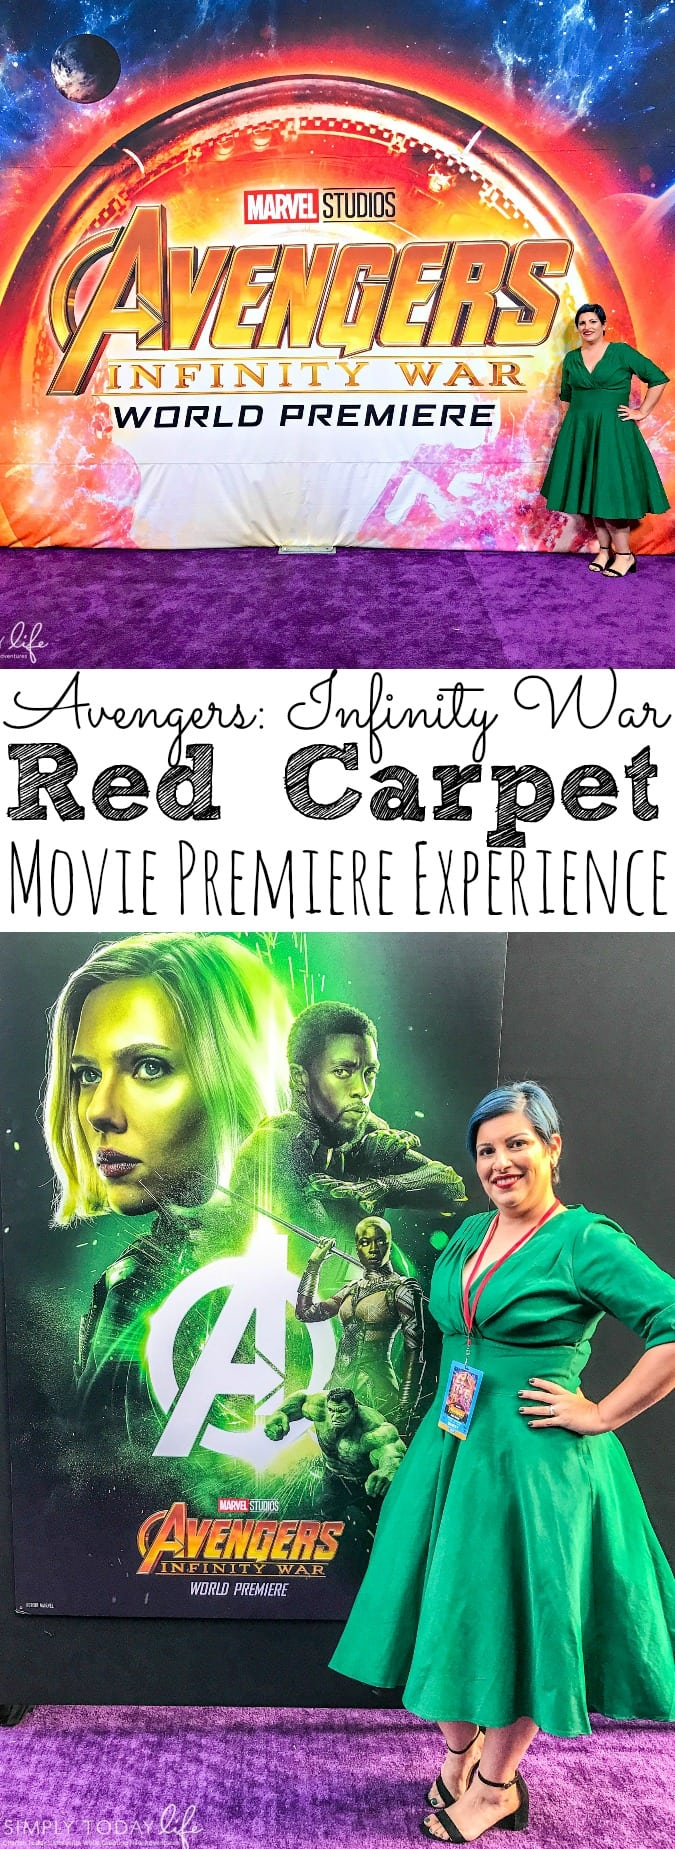 Avengers Infinity War Red Carpet Premiere Experience